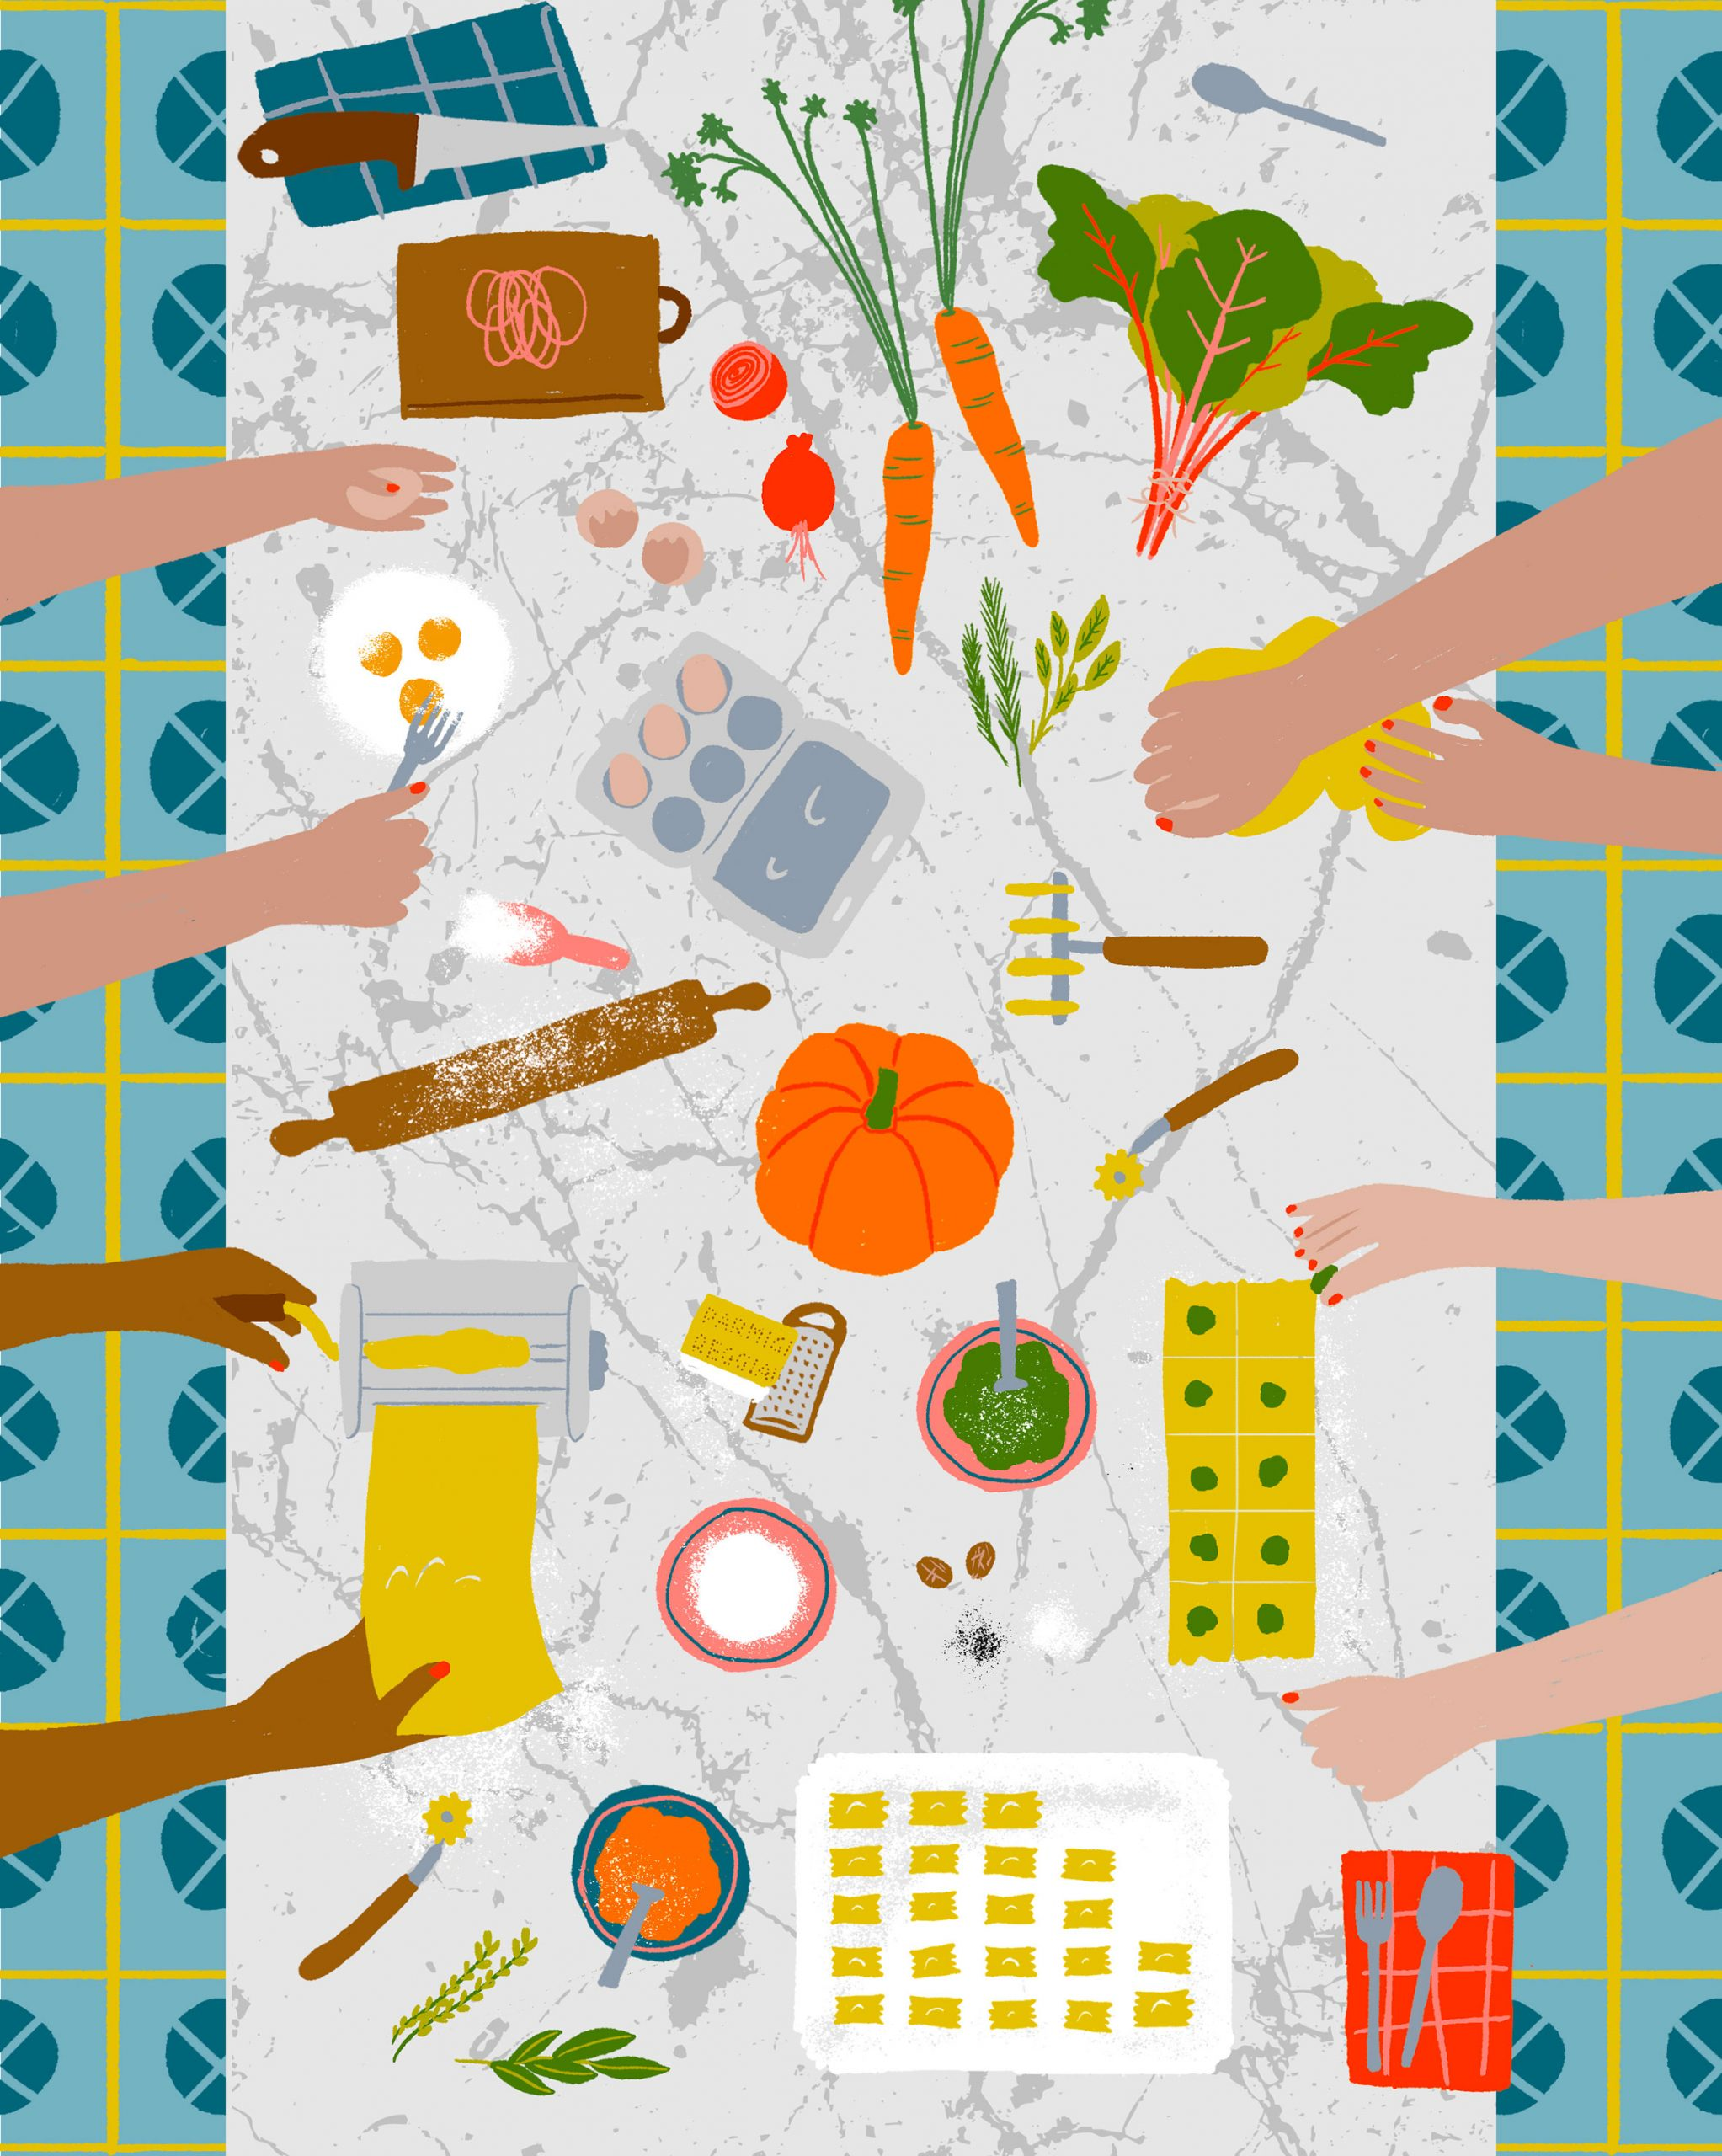 Illustration of many hands over a table preparing food.